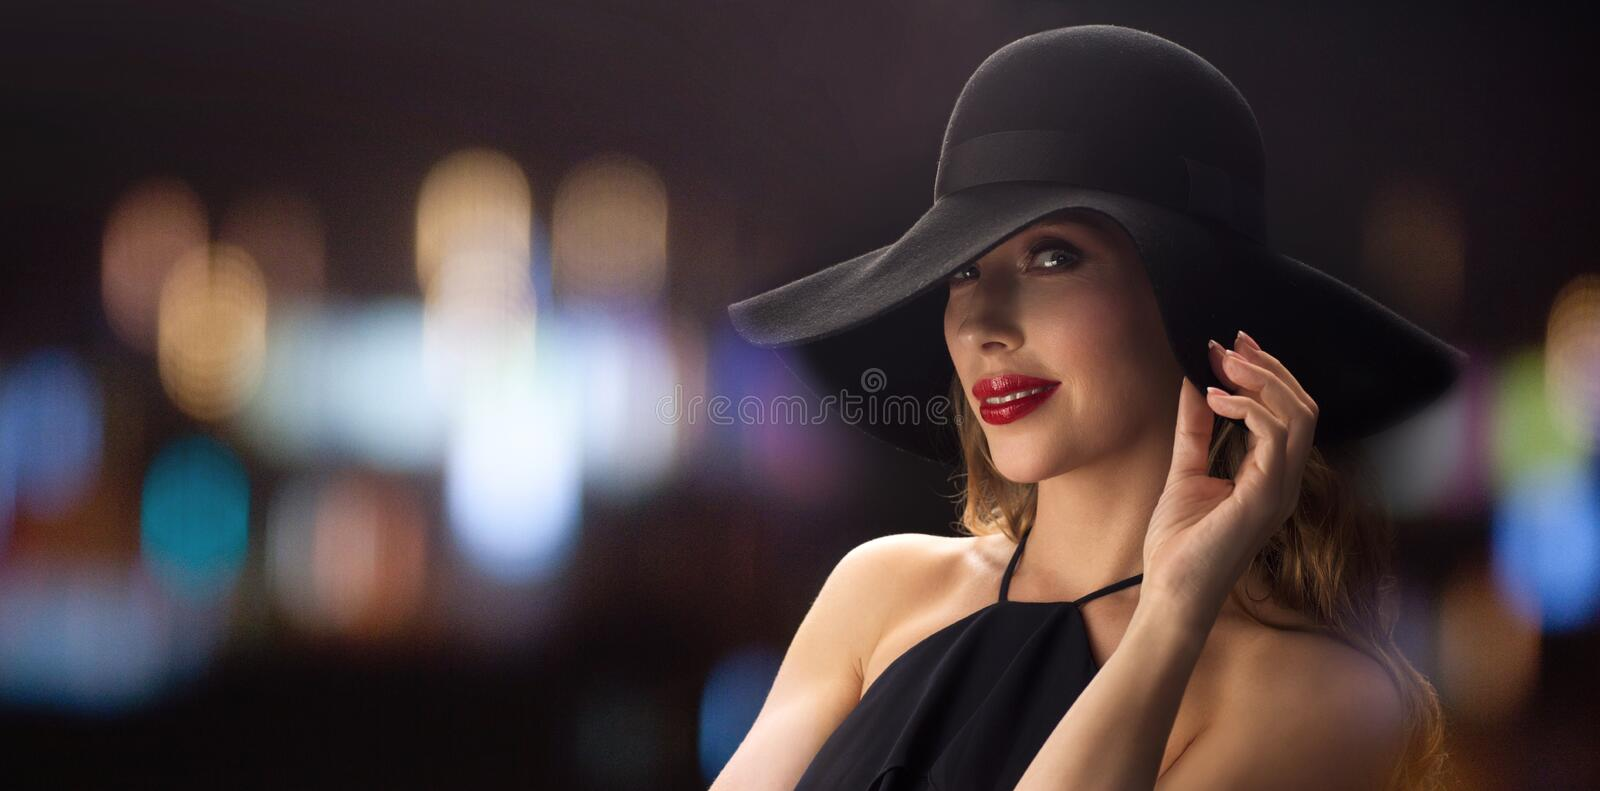 Beautiful woman in black hat over night lights. People, luxury and fashion concept - beautiful woman in black hat over blurred night lights background royalty free stock photography